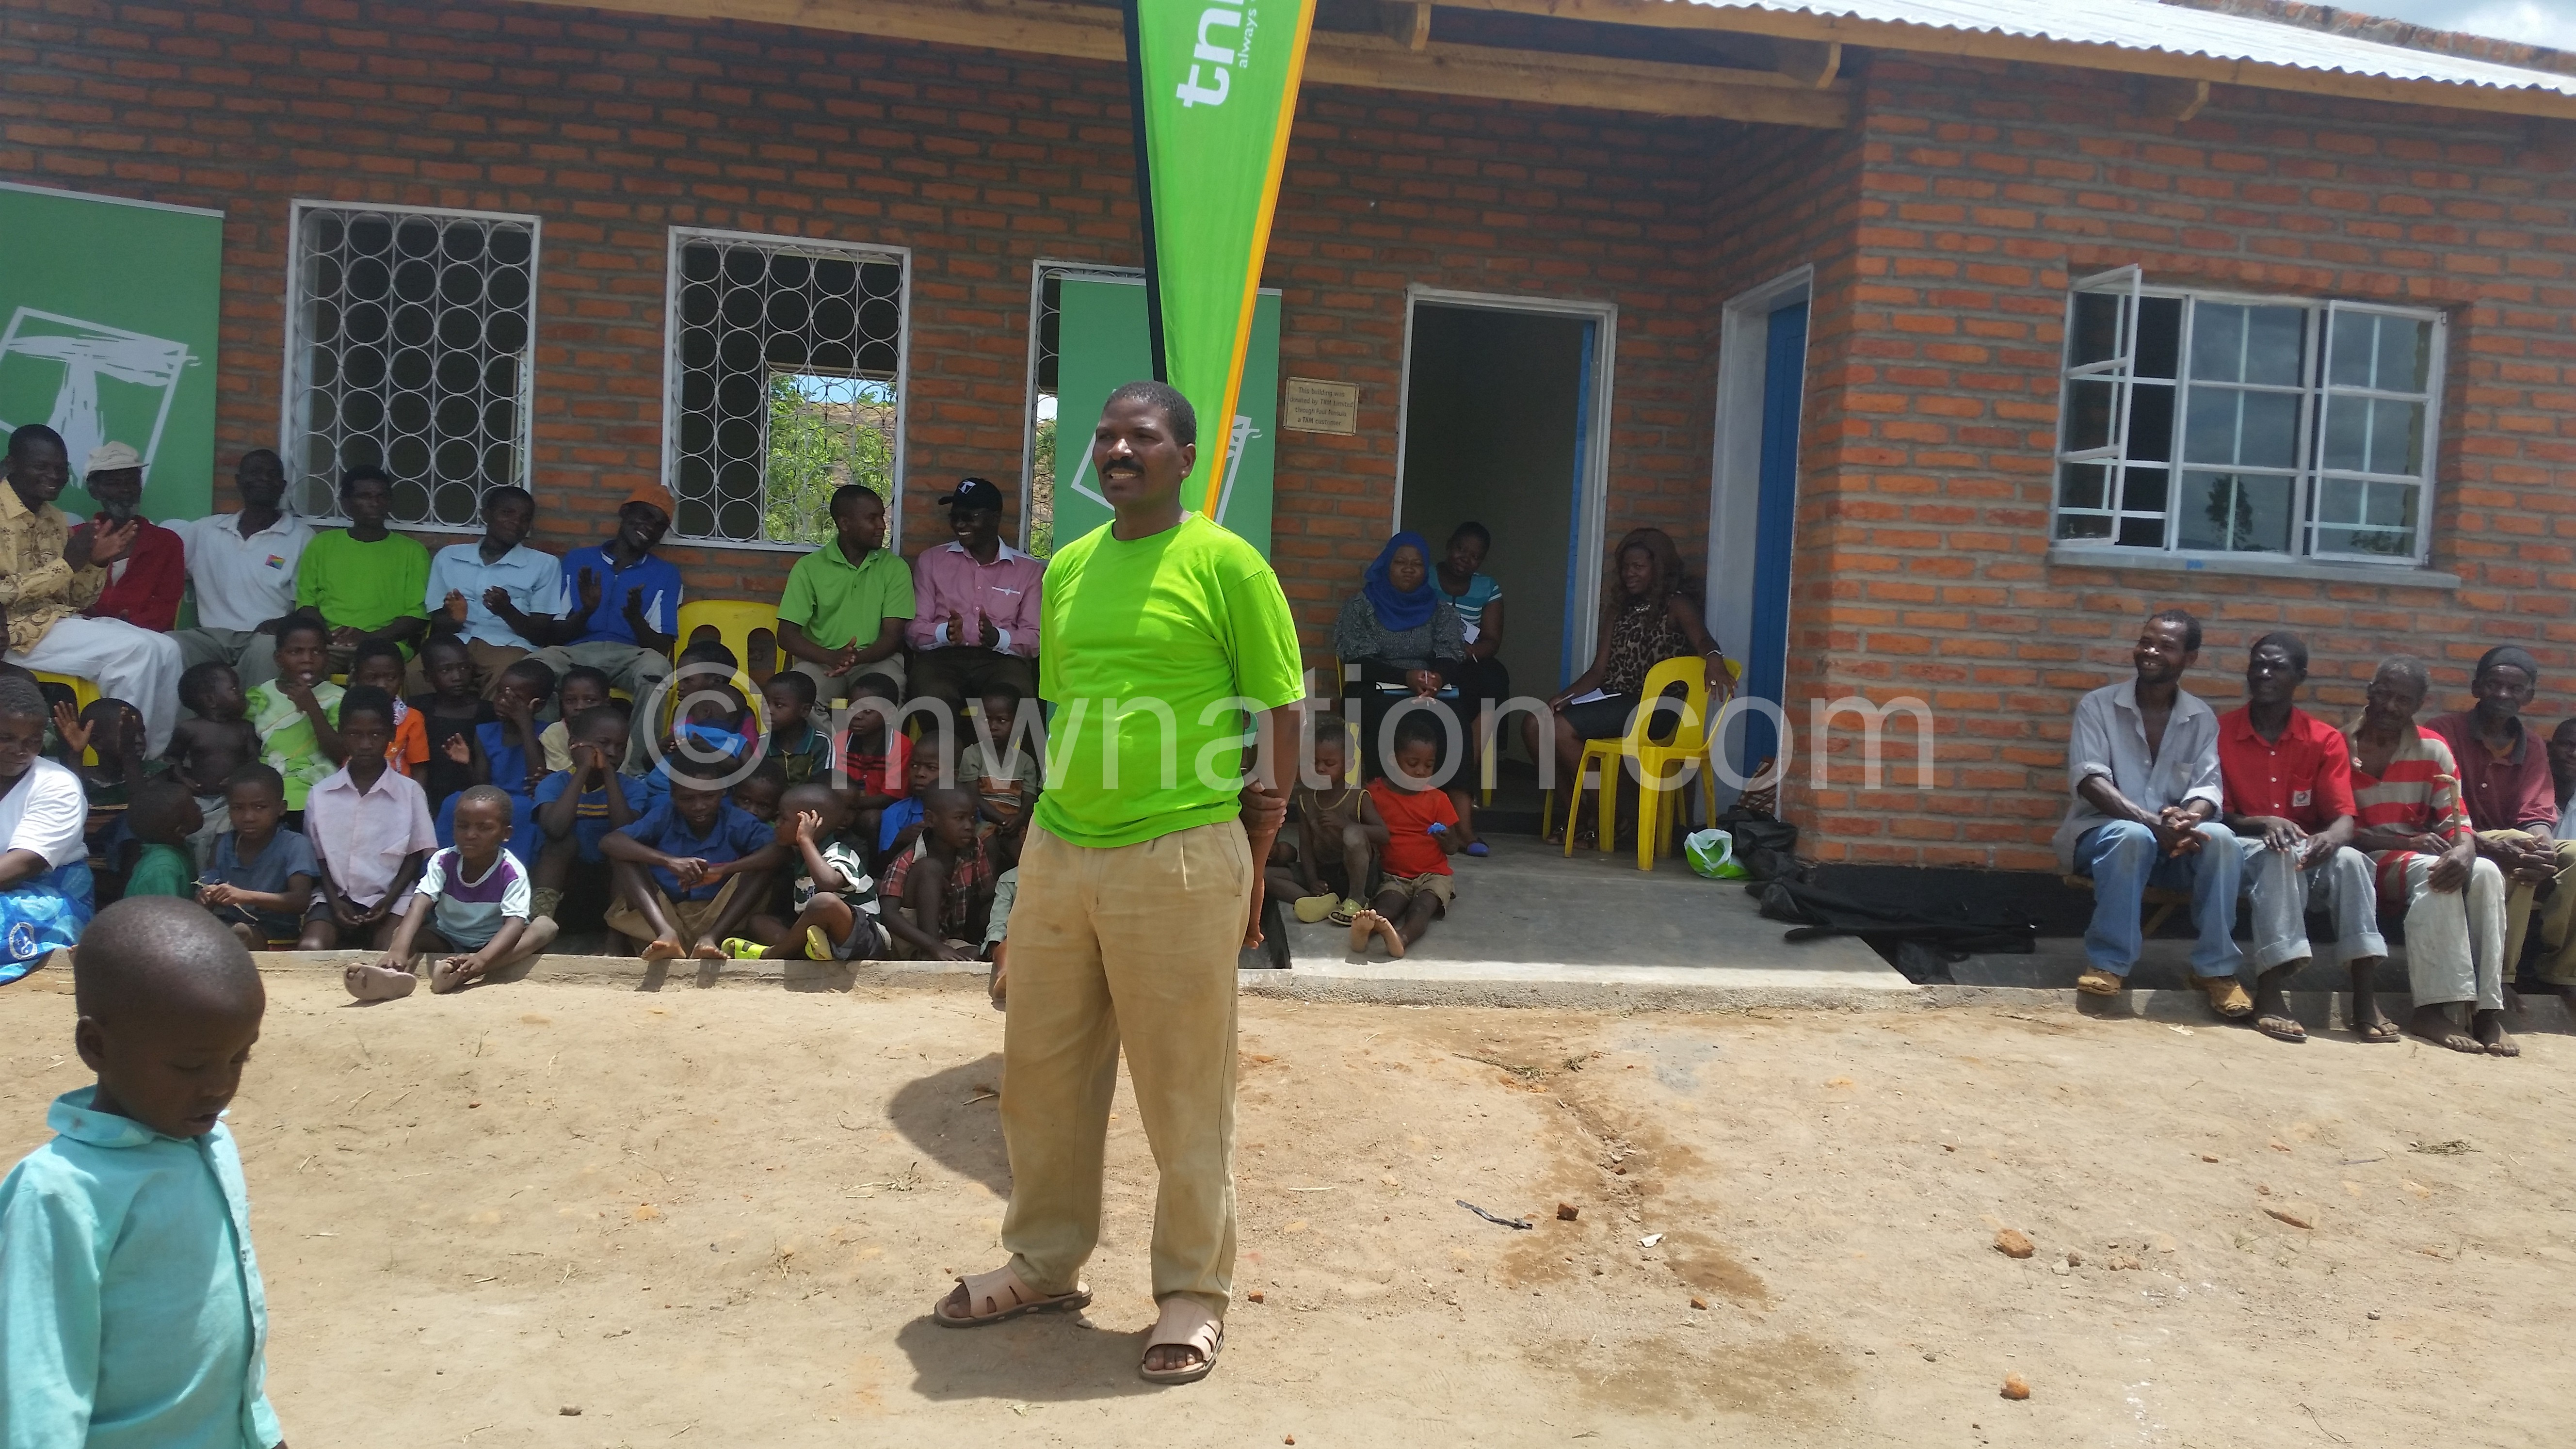 Tnm Hands Over Cbcc In Zomba The Nation Online